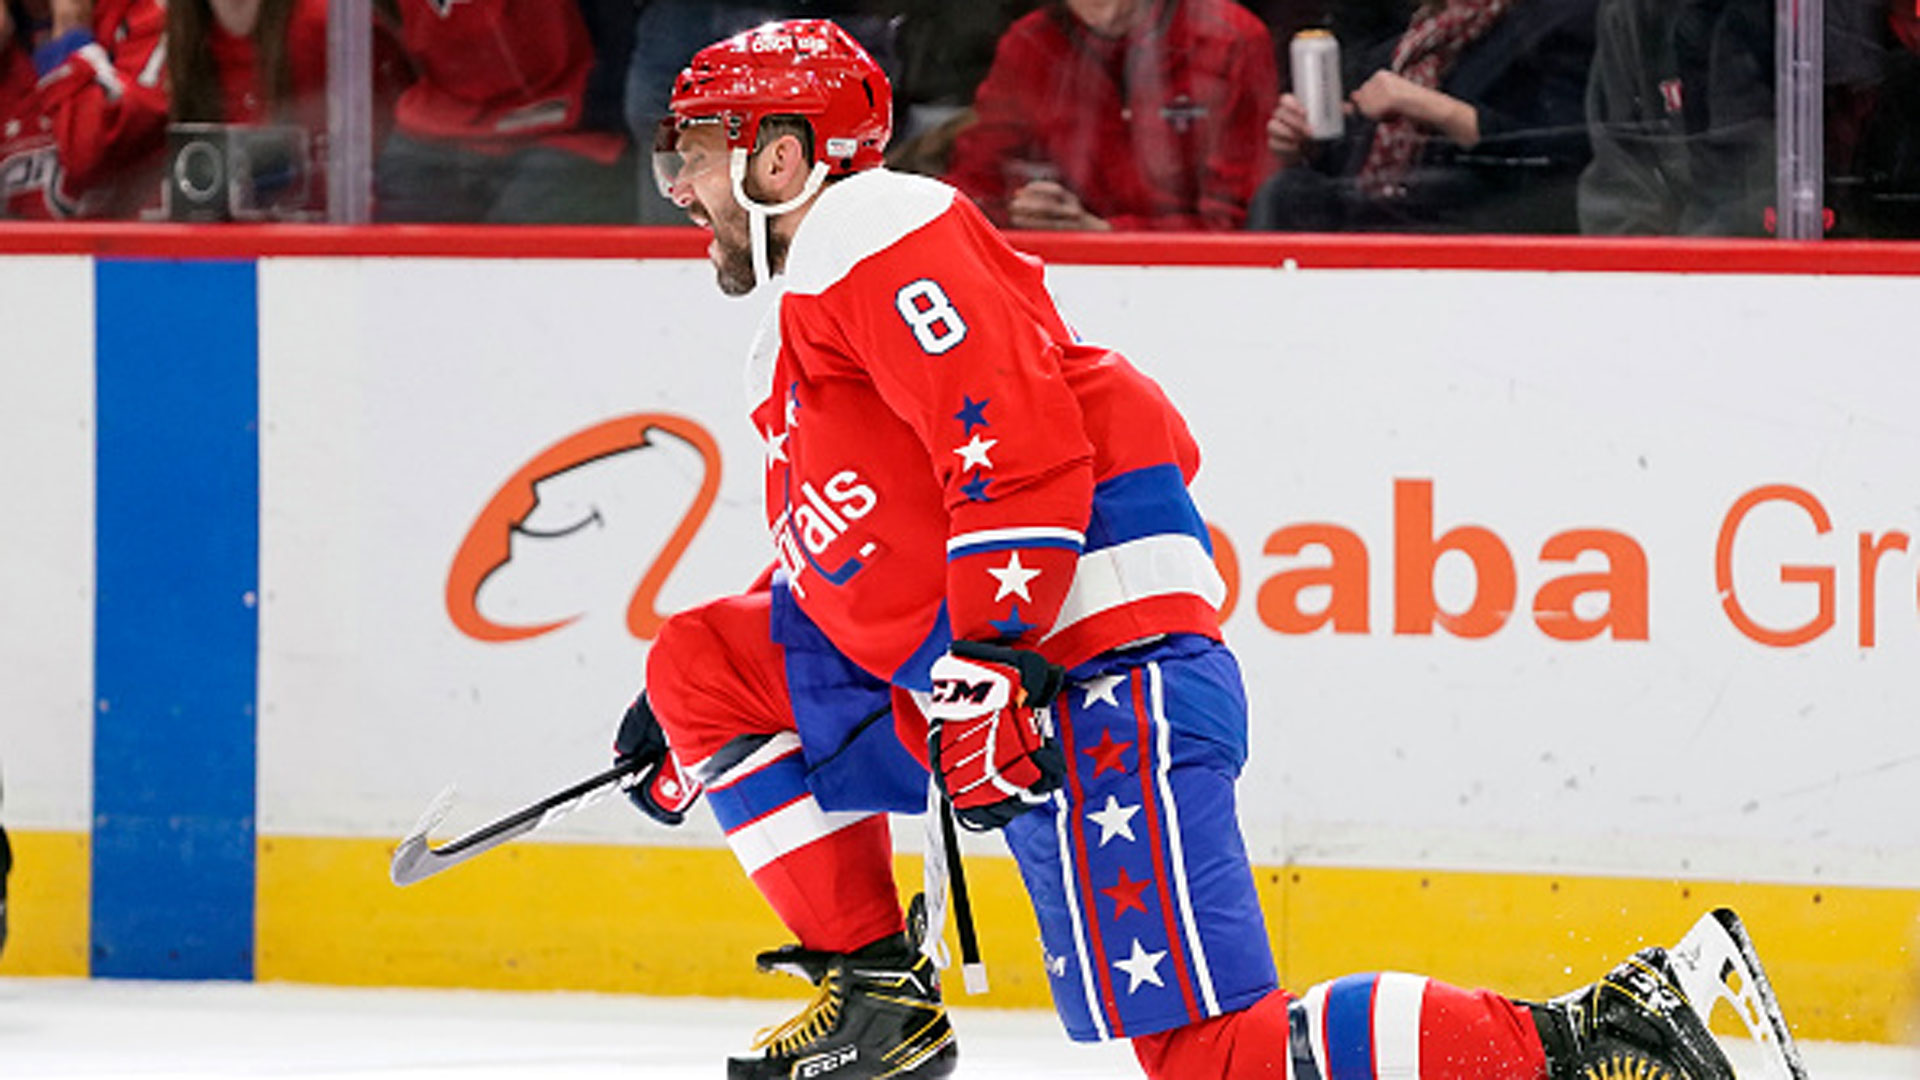 Ovi's hat trick moves him one goal behind Lemieux on all-time list